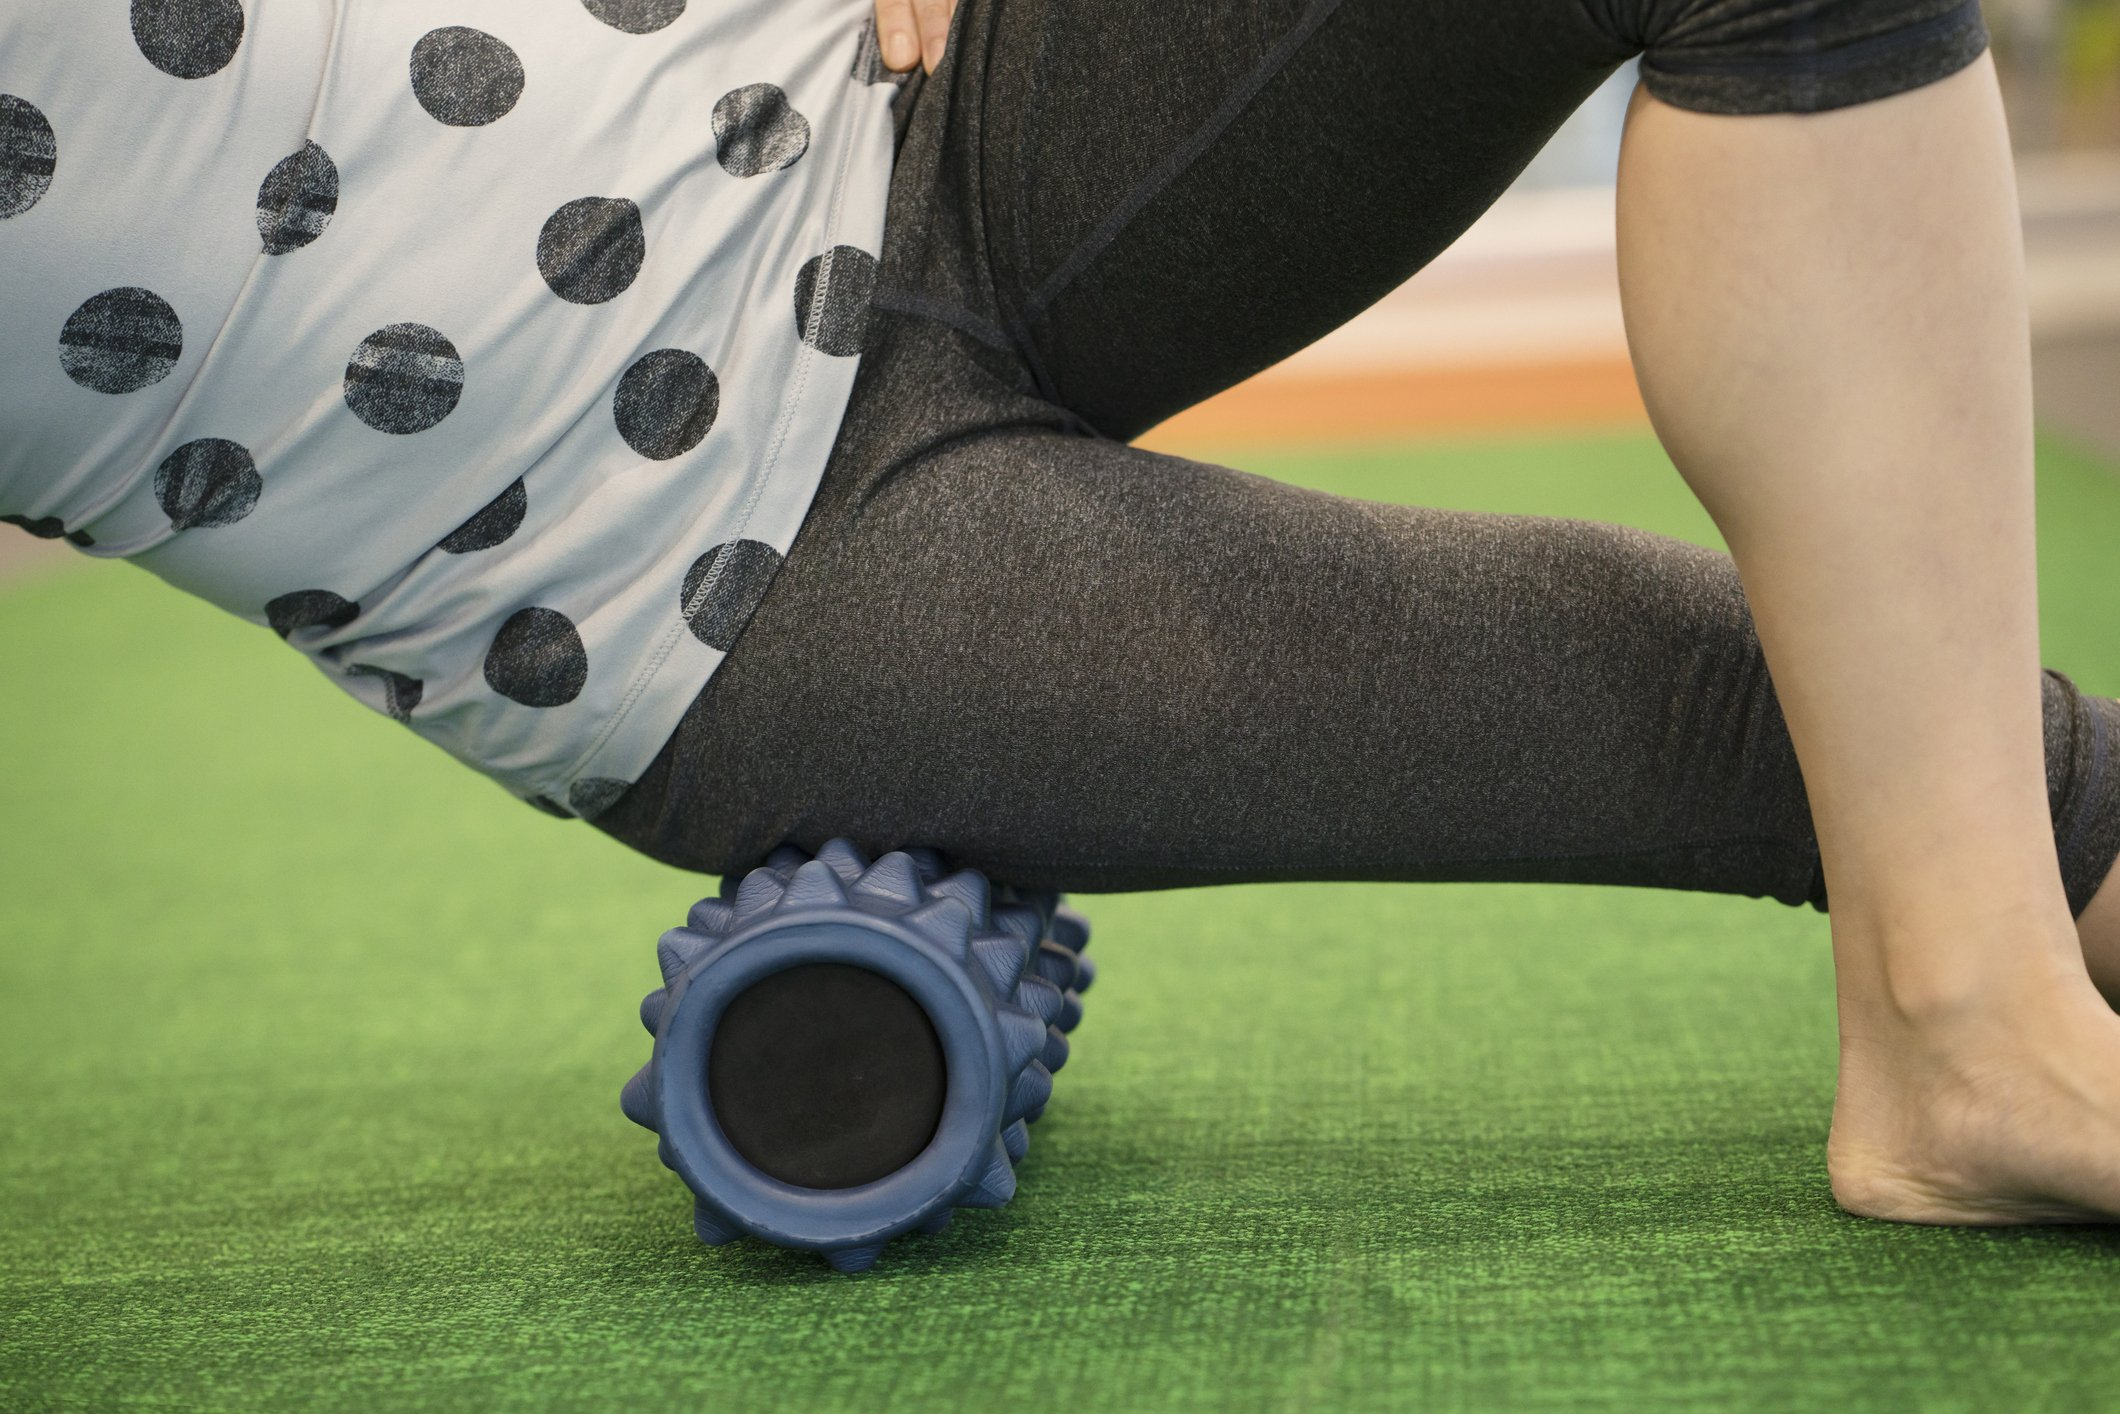 woman using a foam roll on her leg to release tension and help with muscle pain in the exercise class